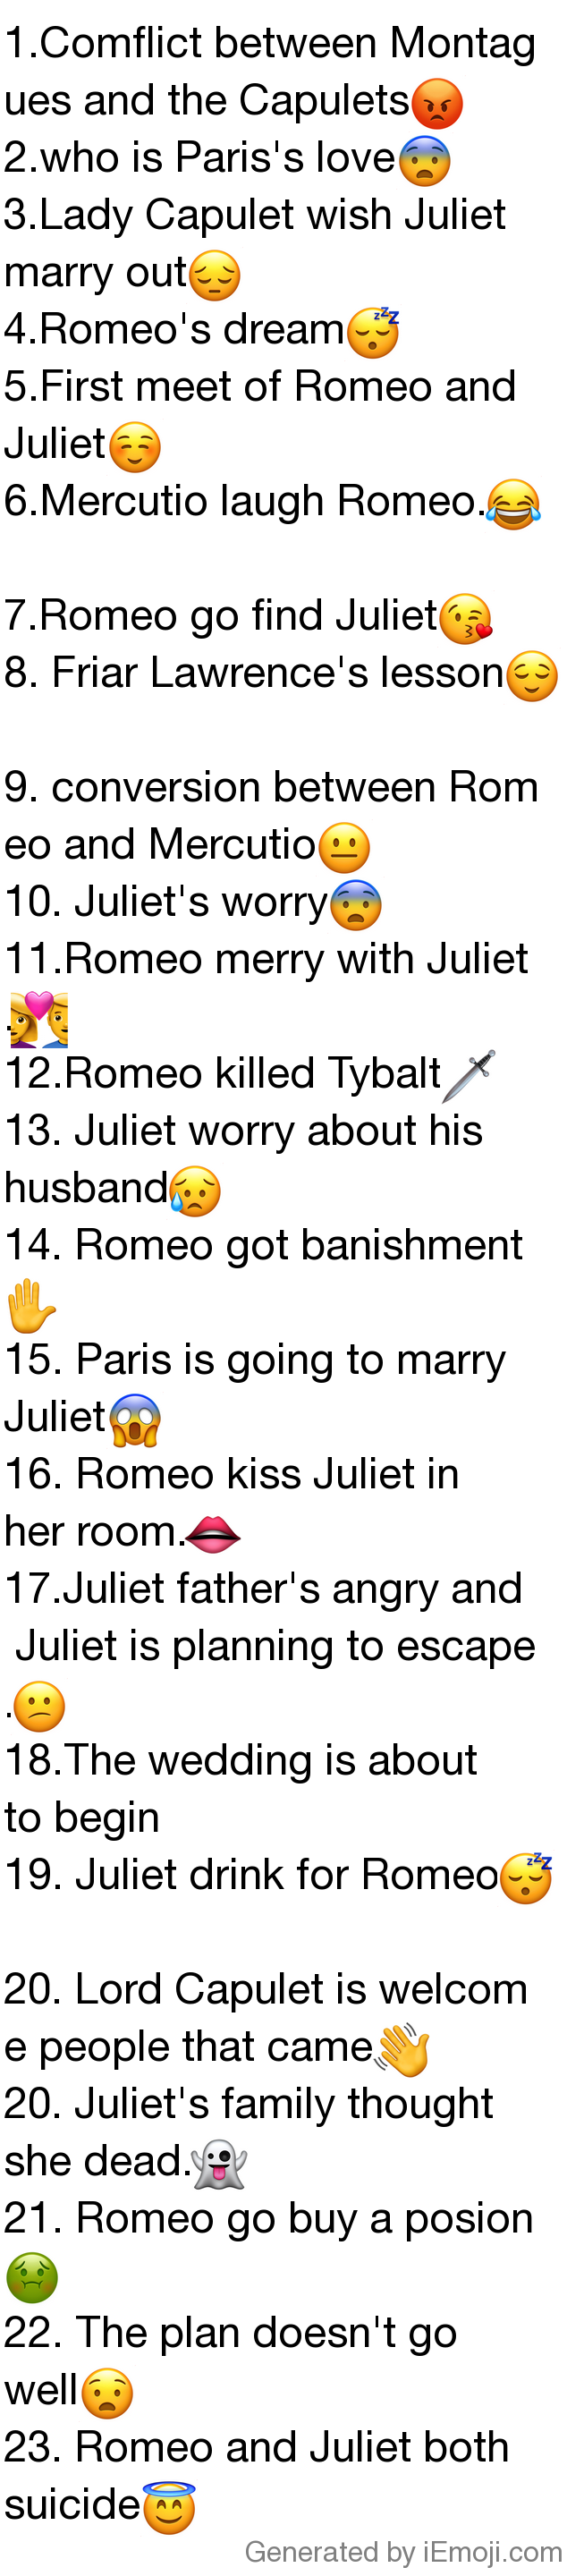 Find The Emoji Wedding.Myemoji Myemoji 1 Comflict Between Montagues And The Capulets